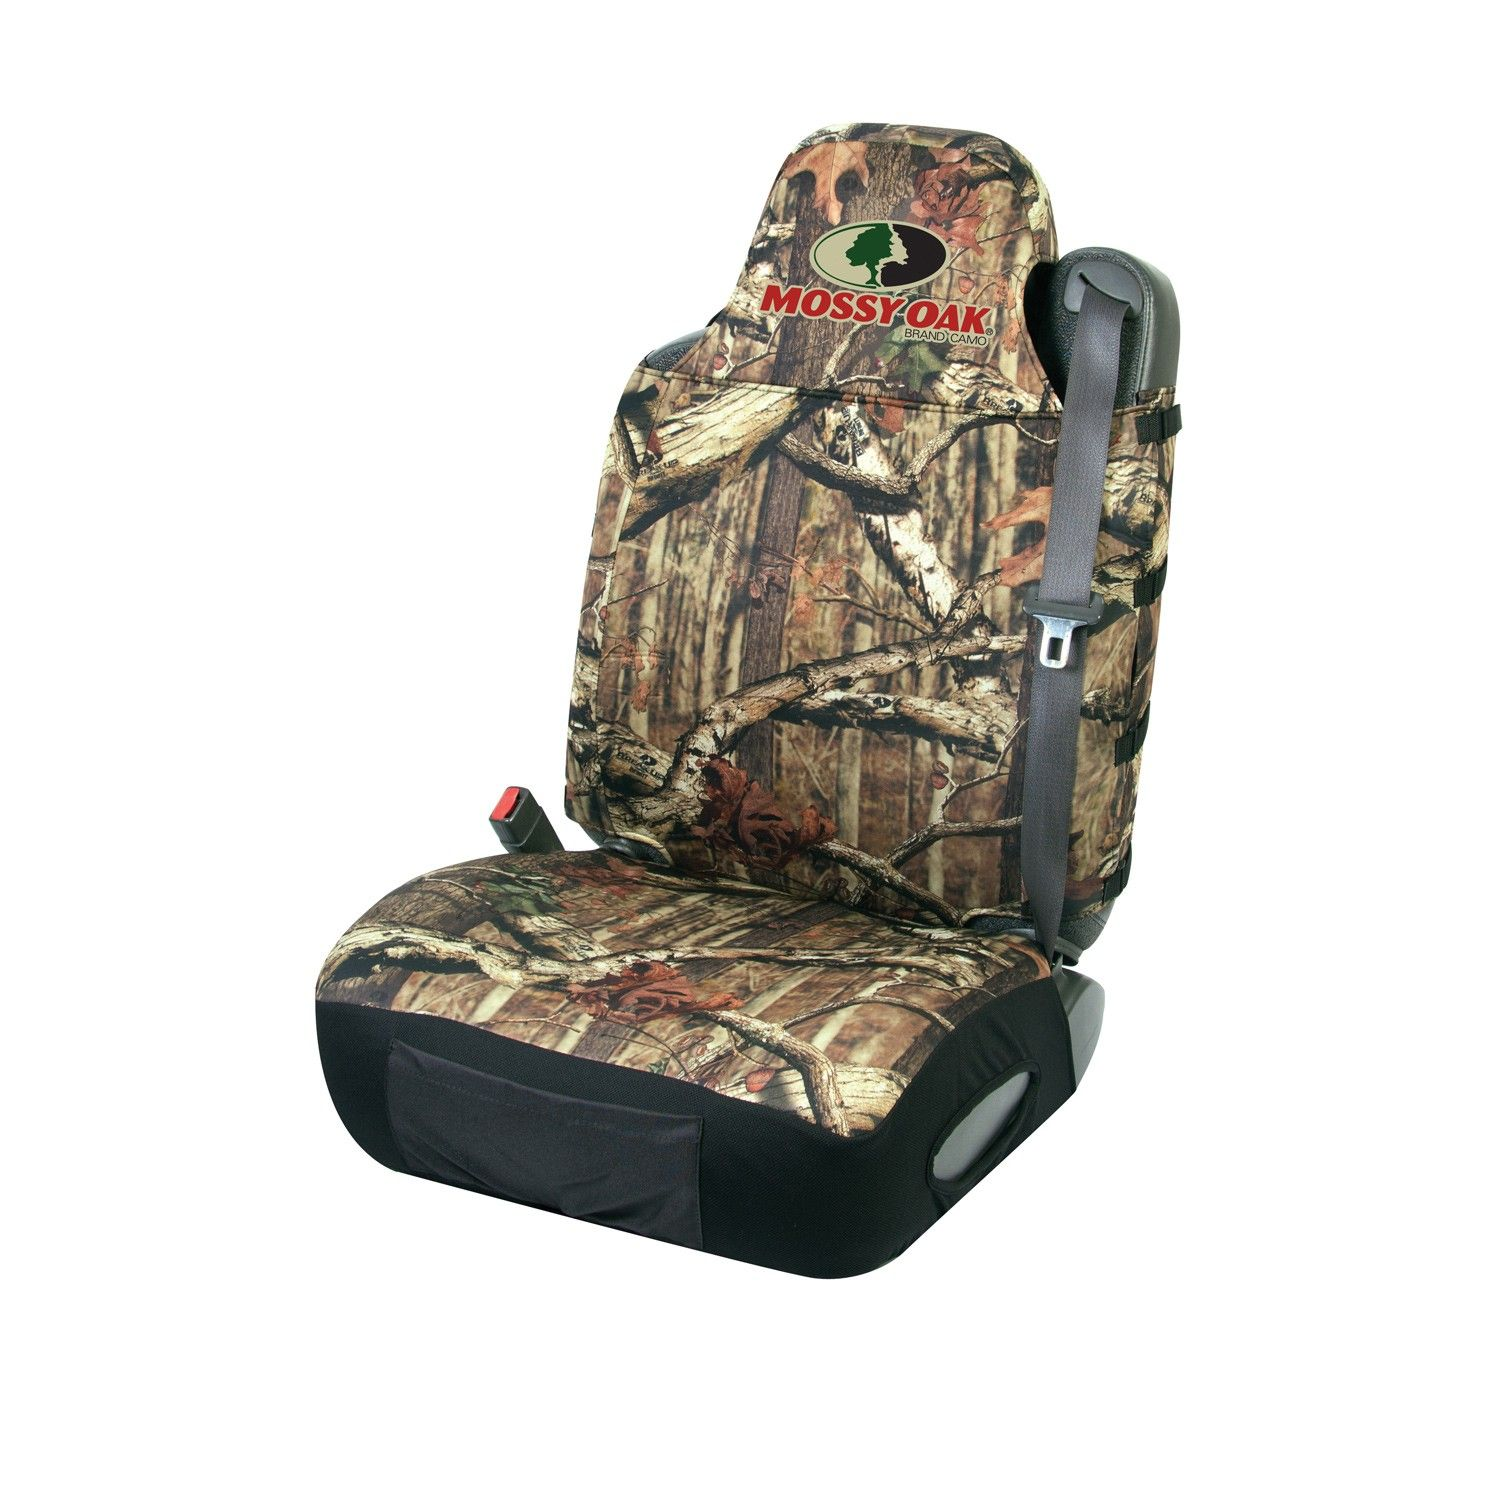 floors car custom n mats floor seat camo baby carmat toddler aggregate personalized back